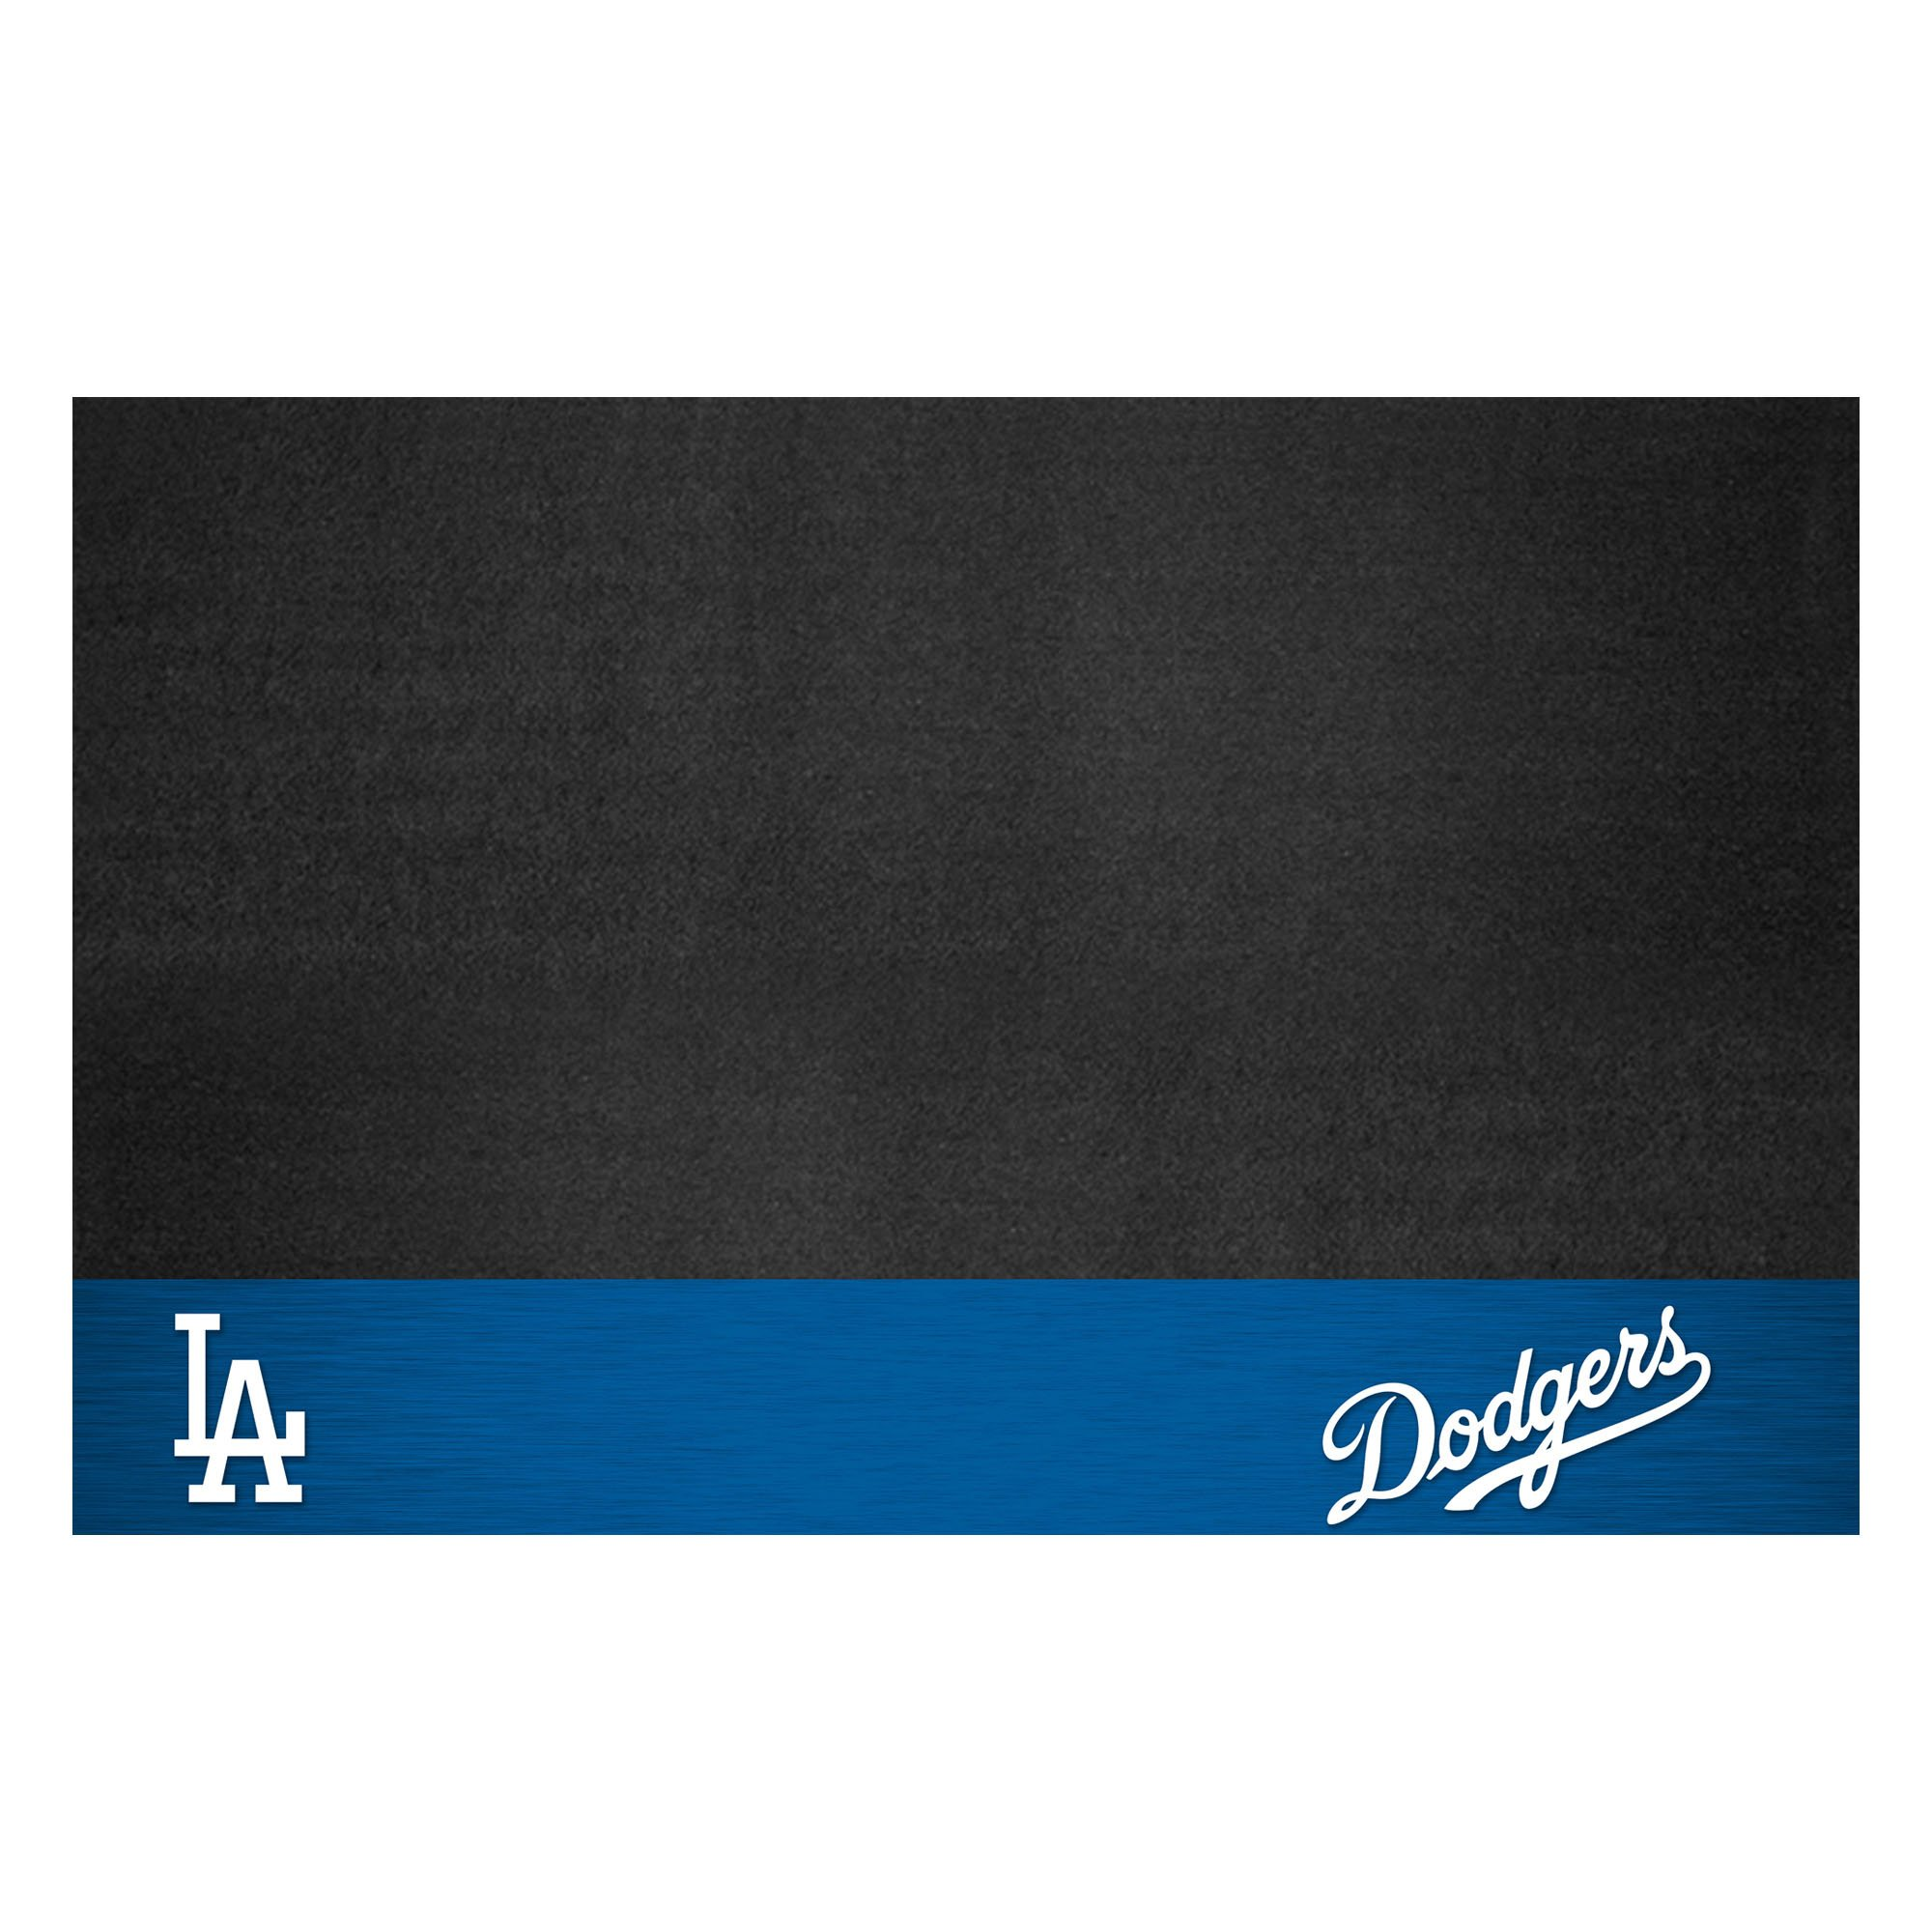 FANMATS MLB Los Angeles Dodgers Vinyl Grill Mat by FANMATS